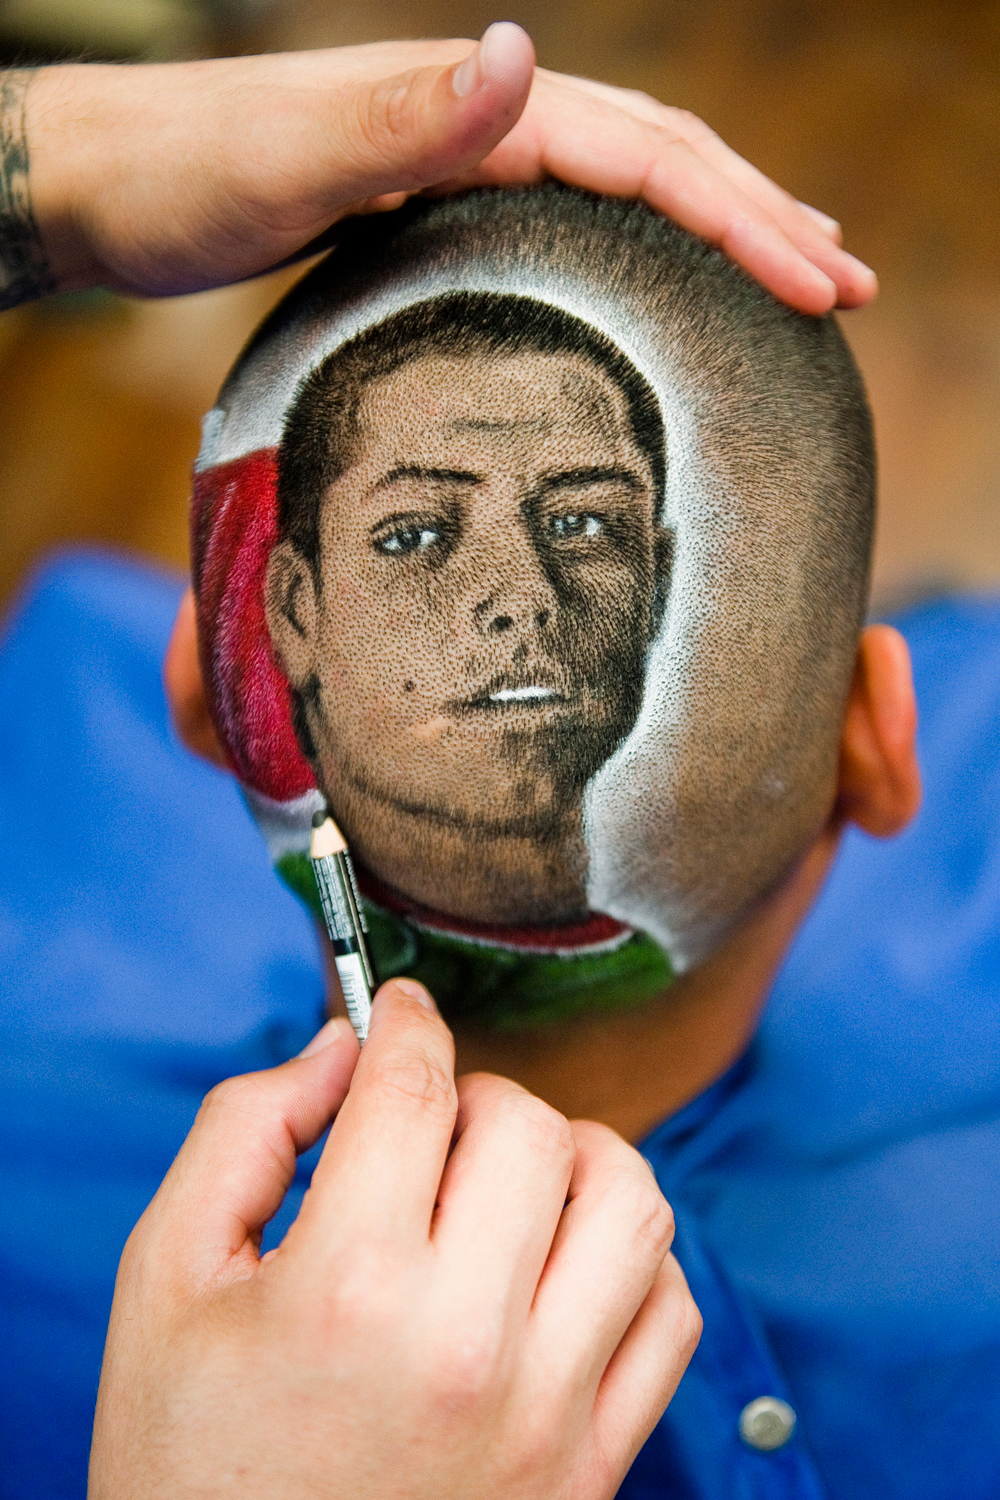 The likeness of Mexican soccer player Javier Hernández Balcazar known as  Chicharito  on the head of a customer.